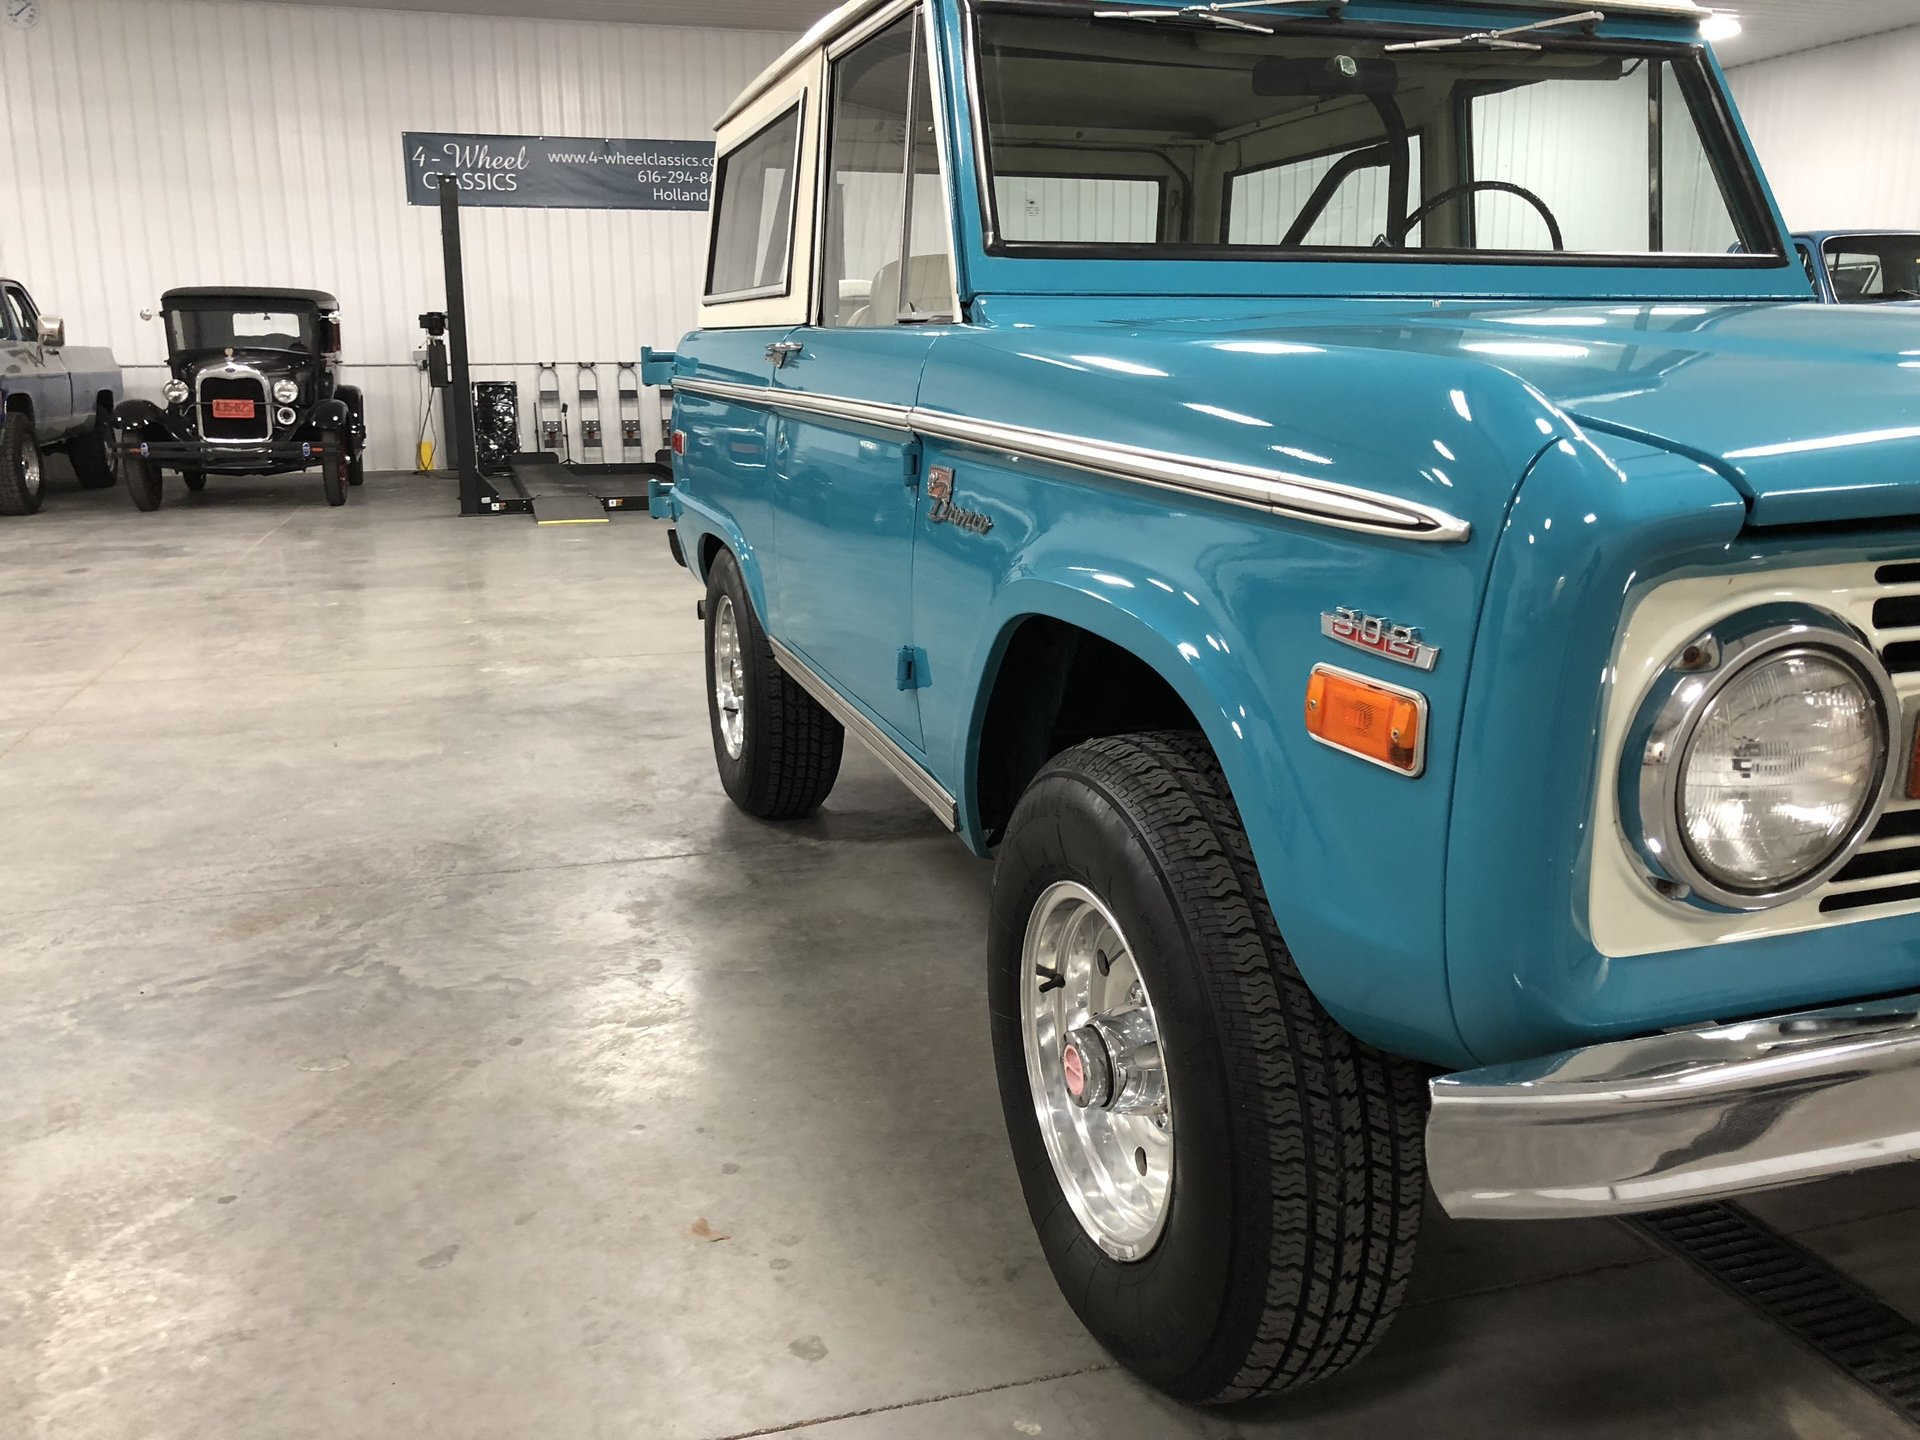 1970 Ford Bronco 4 Wheel Classics Classic Car Truck And Suv Sales Full Size